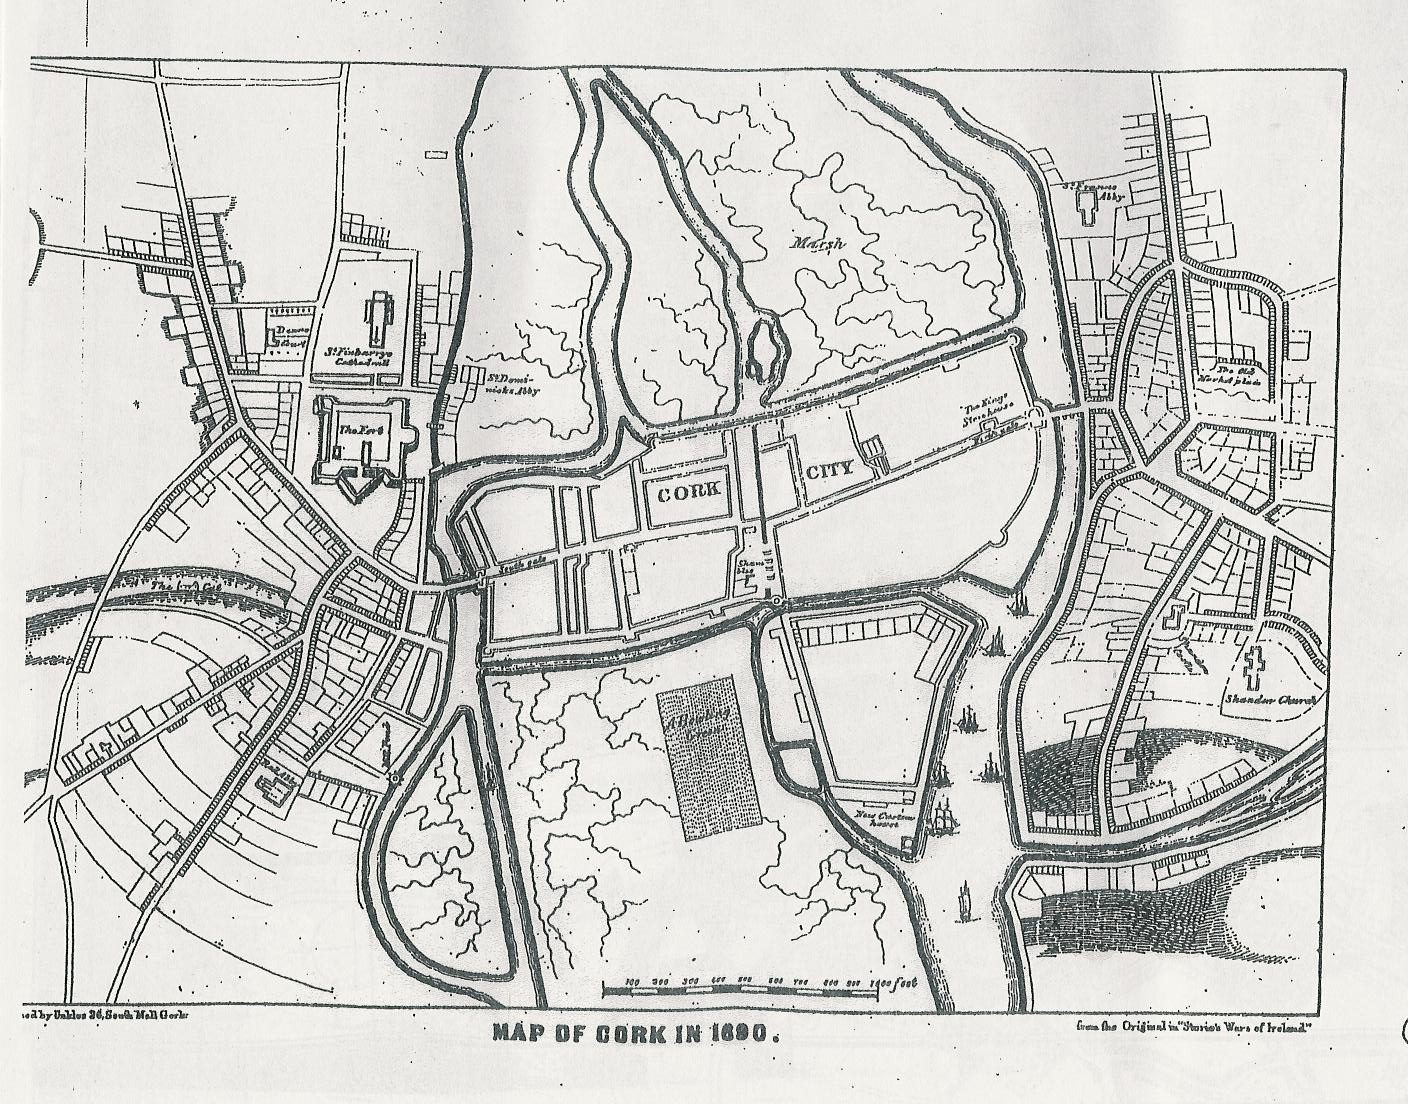 Storey's Map of Cork, 1690 (source: Cork City Library)